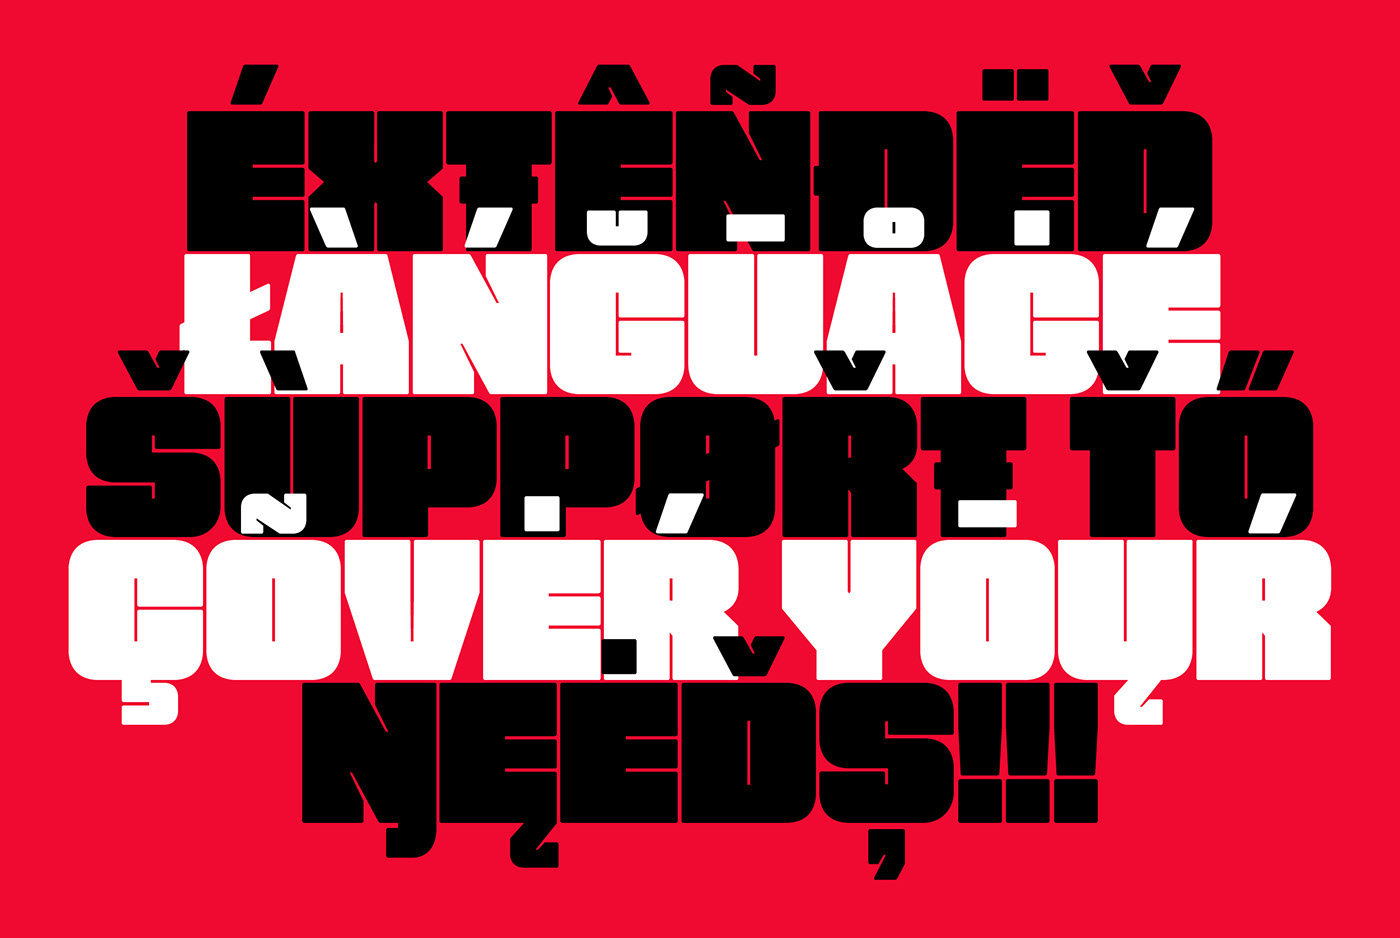 free Free font free fonts fat bold Display Typeface multilingual packing Advertising